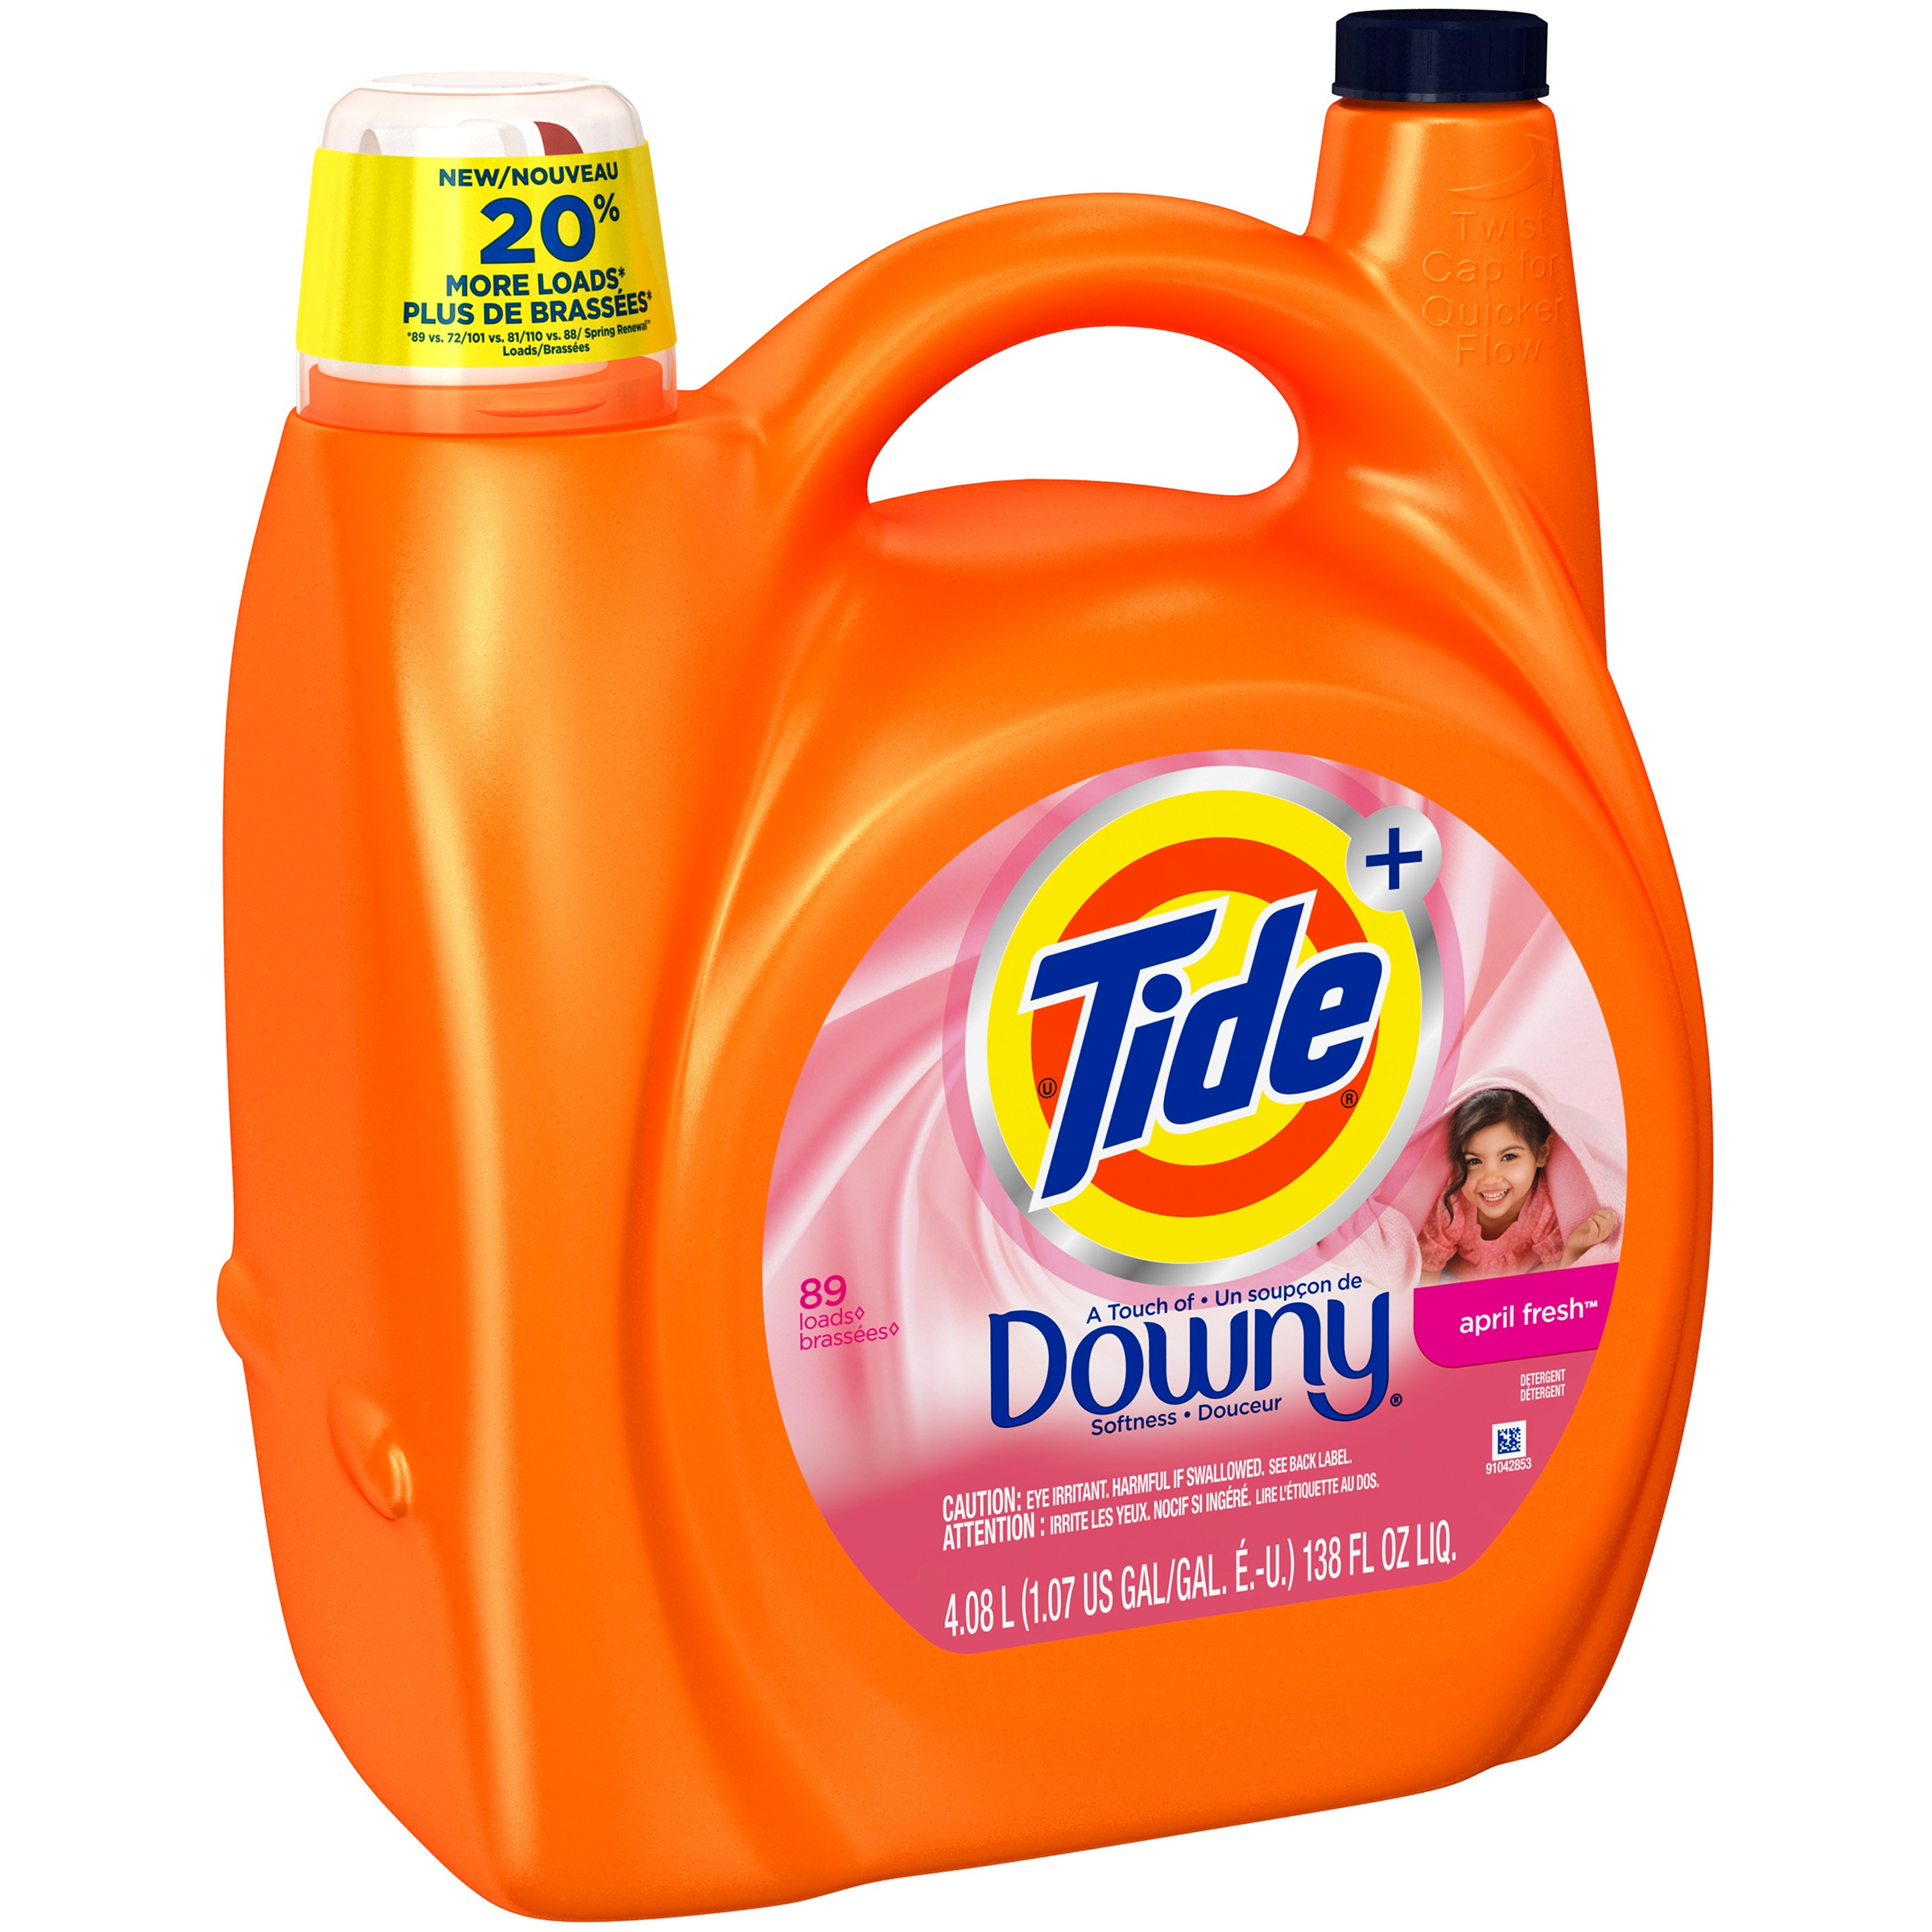 Tide Plus a Touch of Downy April Fresh Liquid Laundry Detergent 138 fl oz